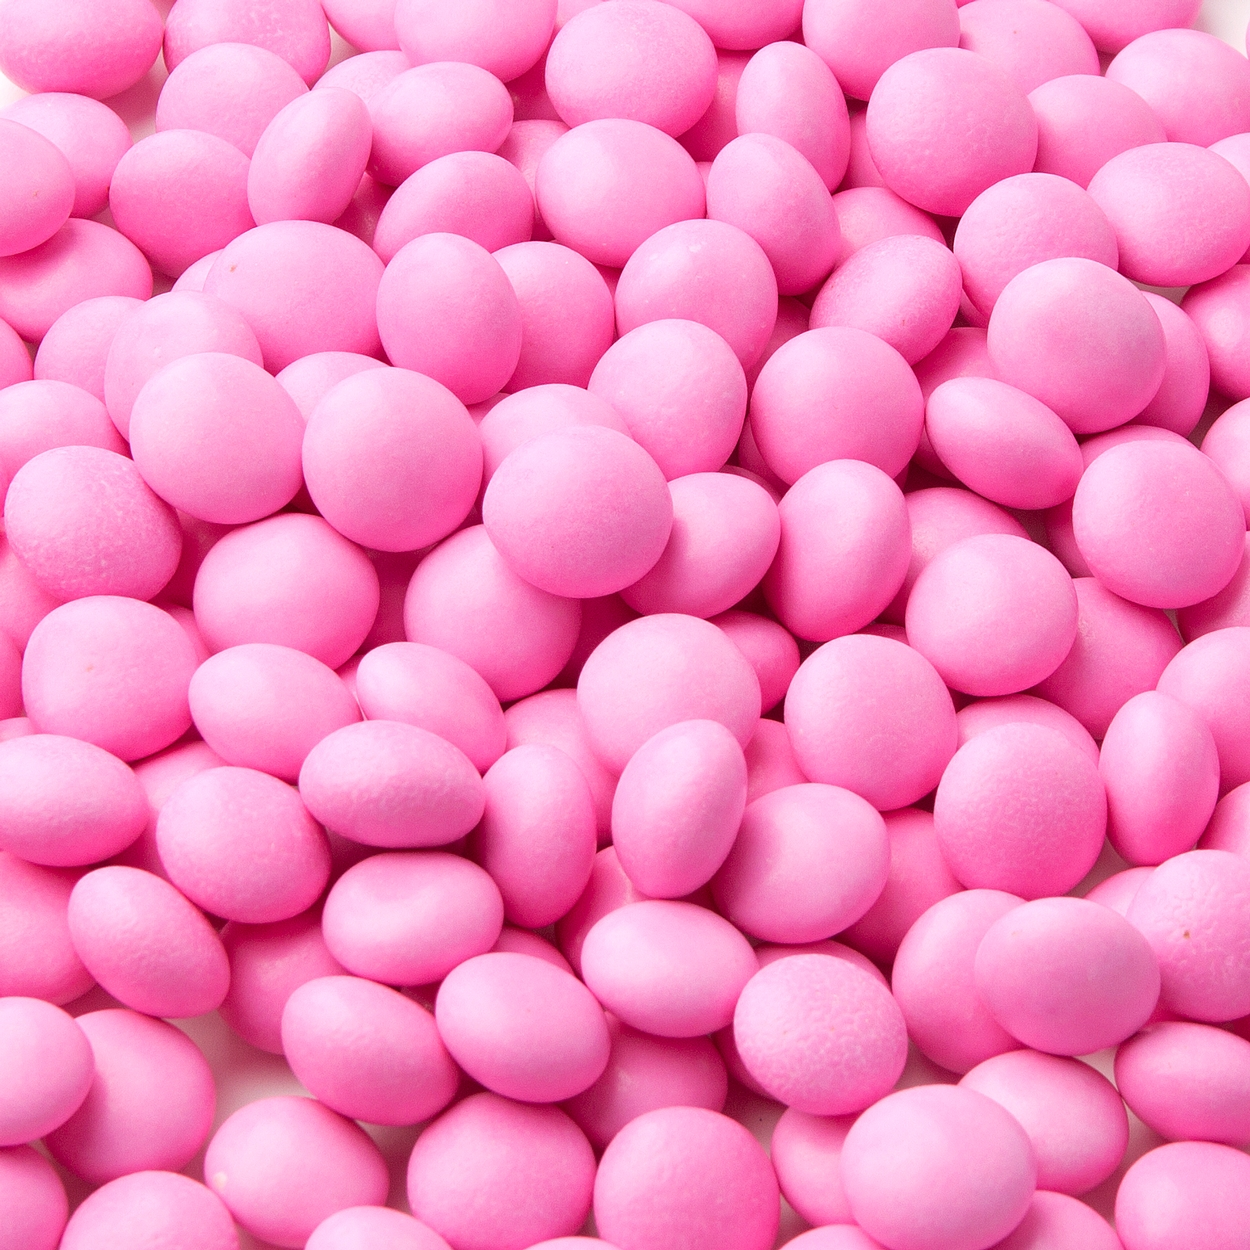 Gourmet Chocolate Covered Mints - Hot Pink • Chocolate Candy ...